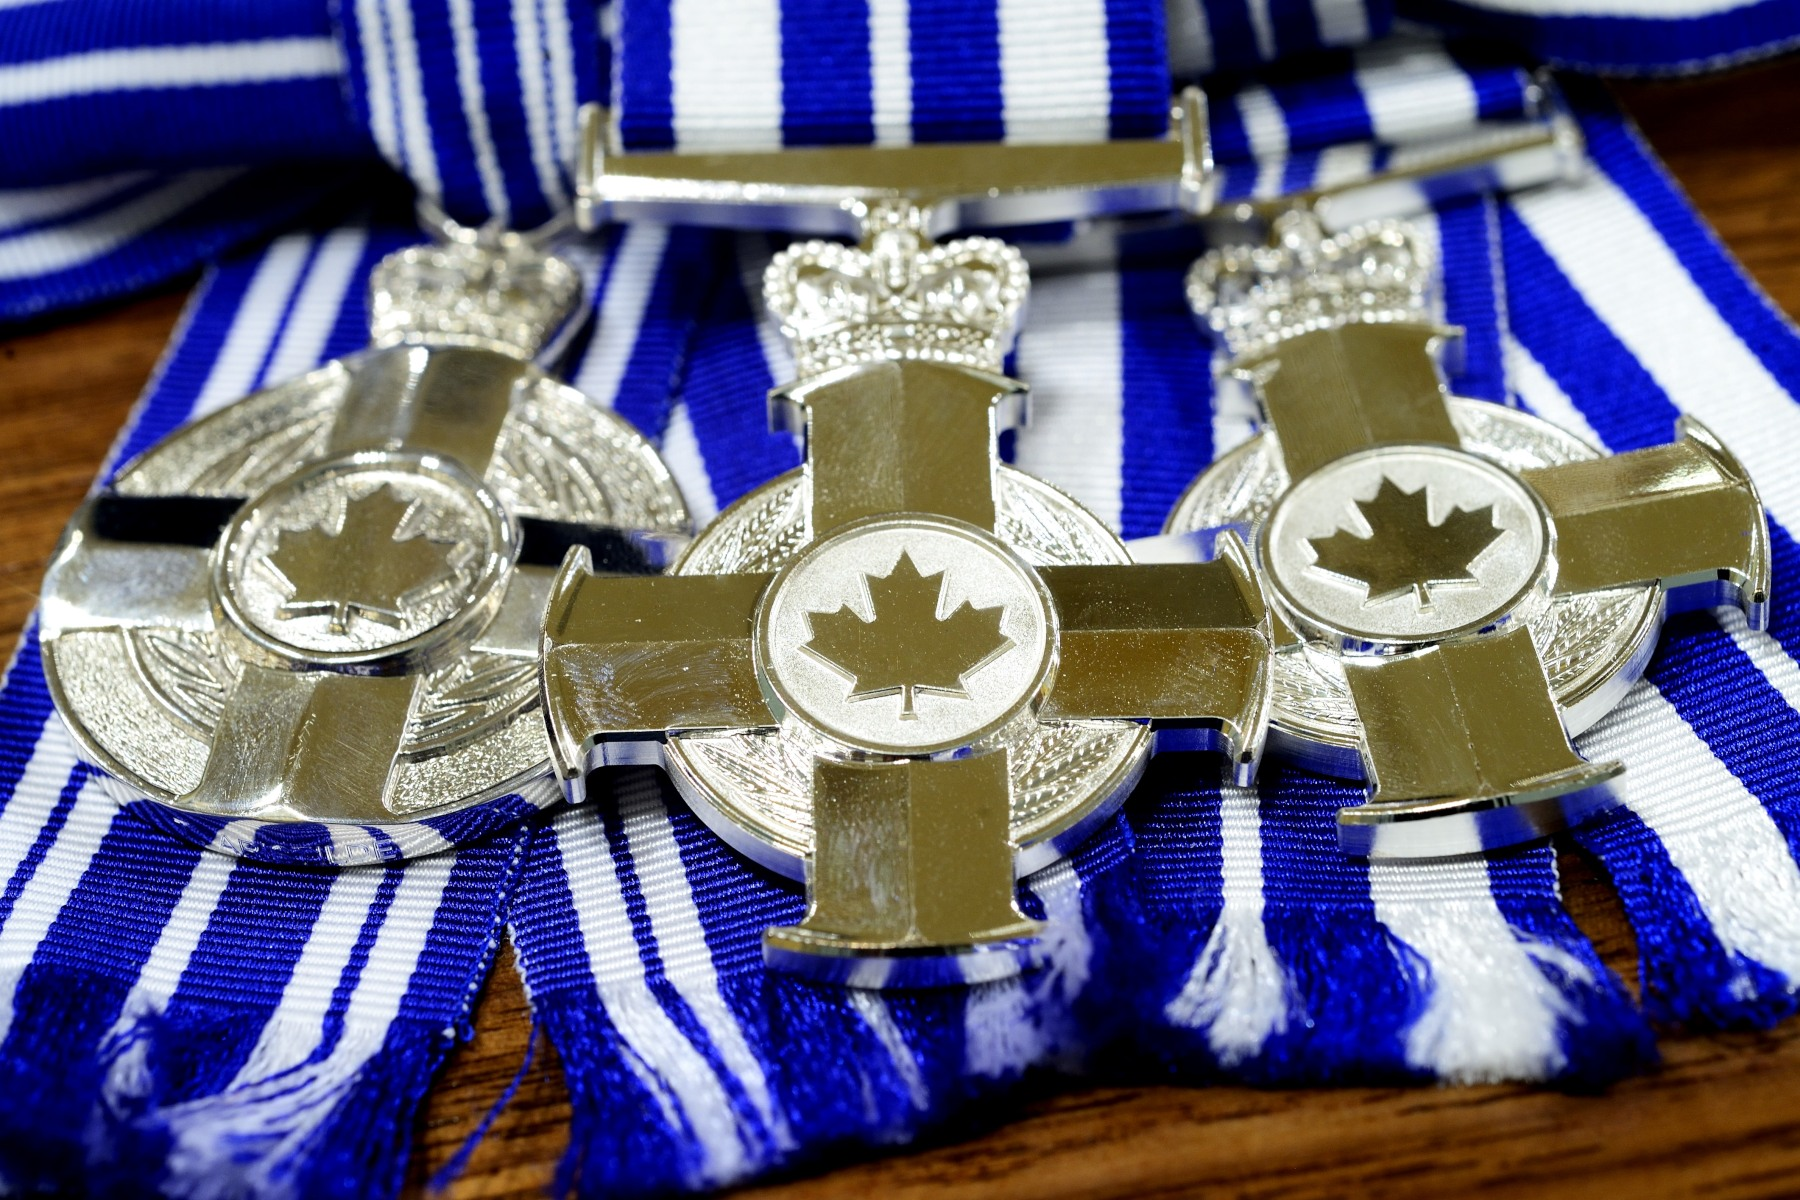 The Meritorious Service Medal is a circular silver medal bearing the Royal Crown: on one side of which appears the design of the Cross, and on the other appears the Royal Cypher, and within a double circle the inscription MERITORIOUS SERVICE MÉRITOIRE.